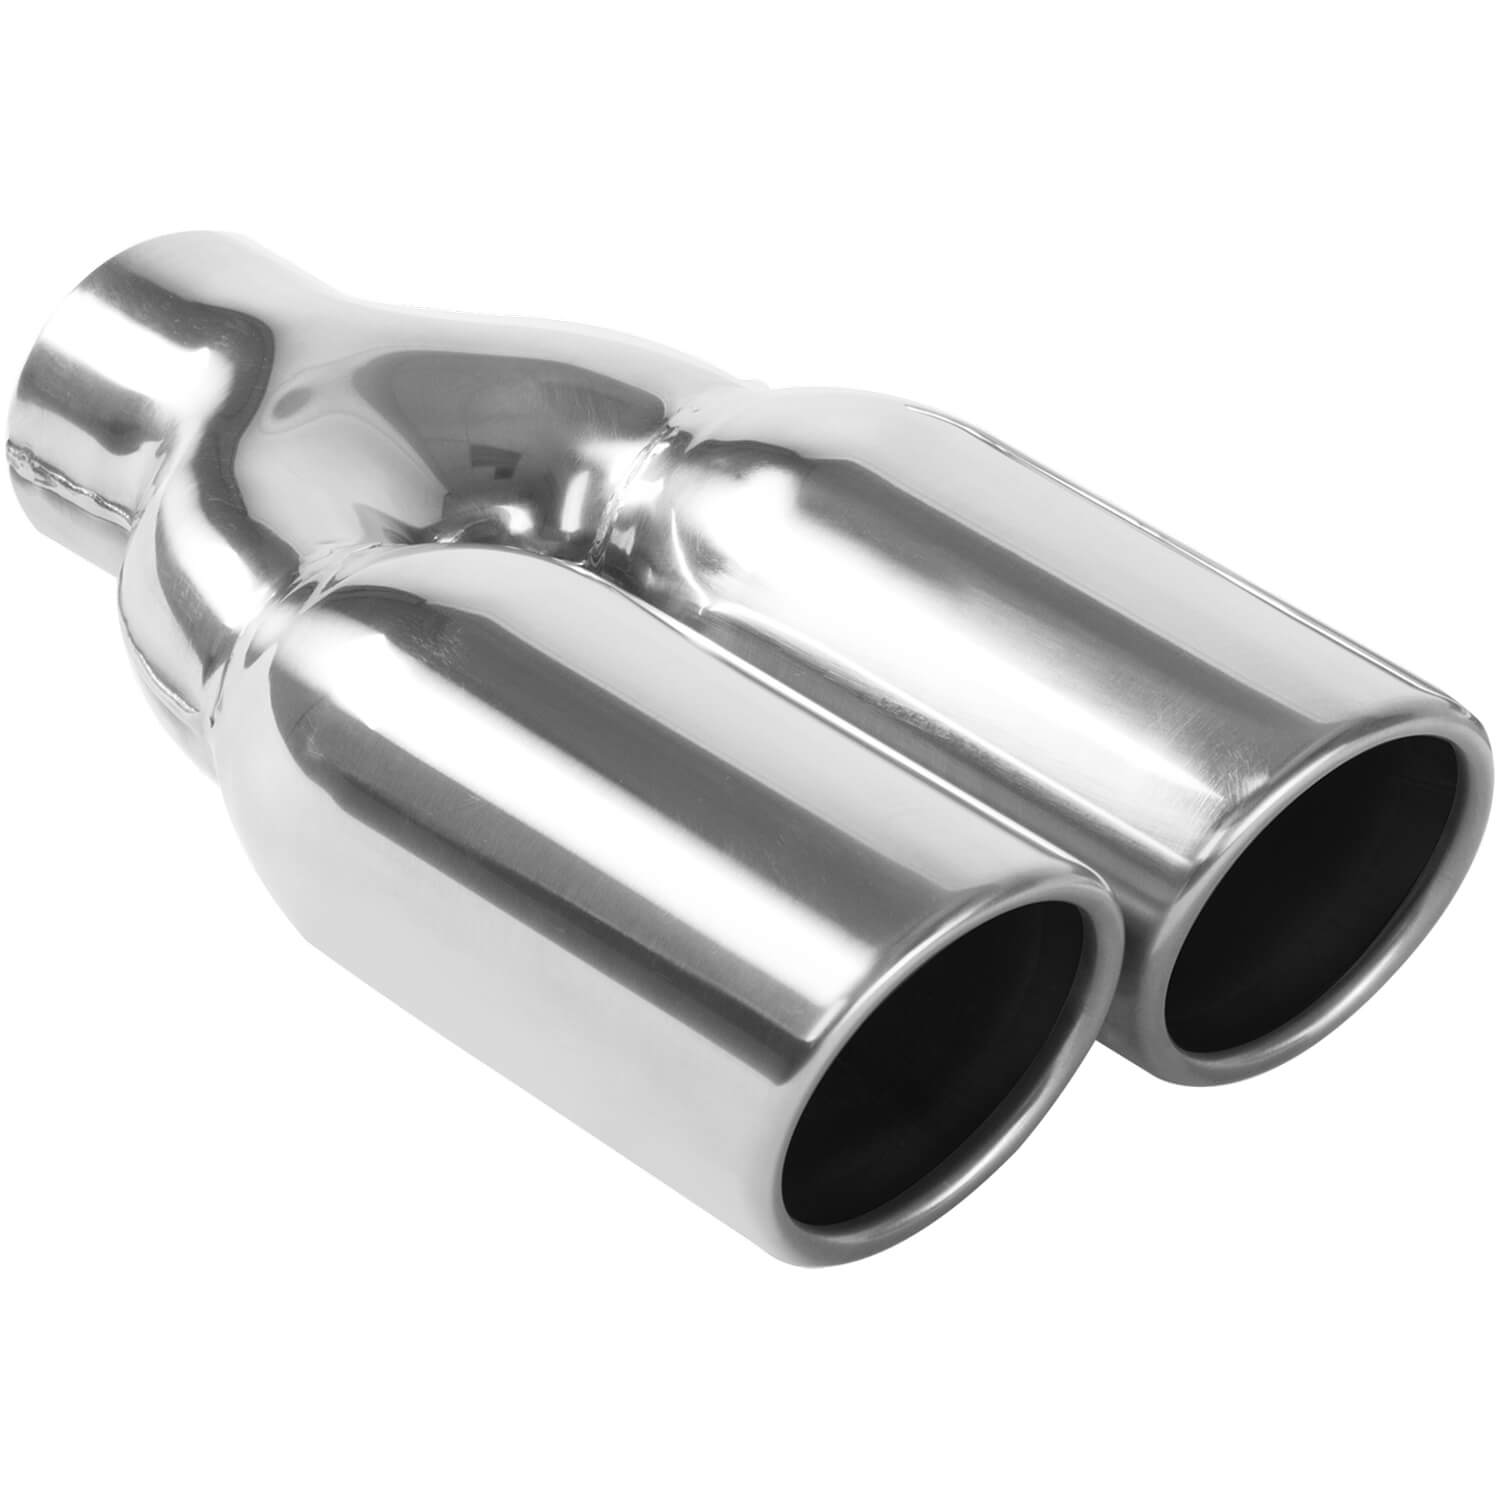 Magnaflow 35167 - Magnaflow Polished Stainless Steel Weld-On Dual Exhaust Tips